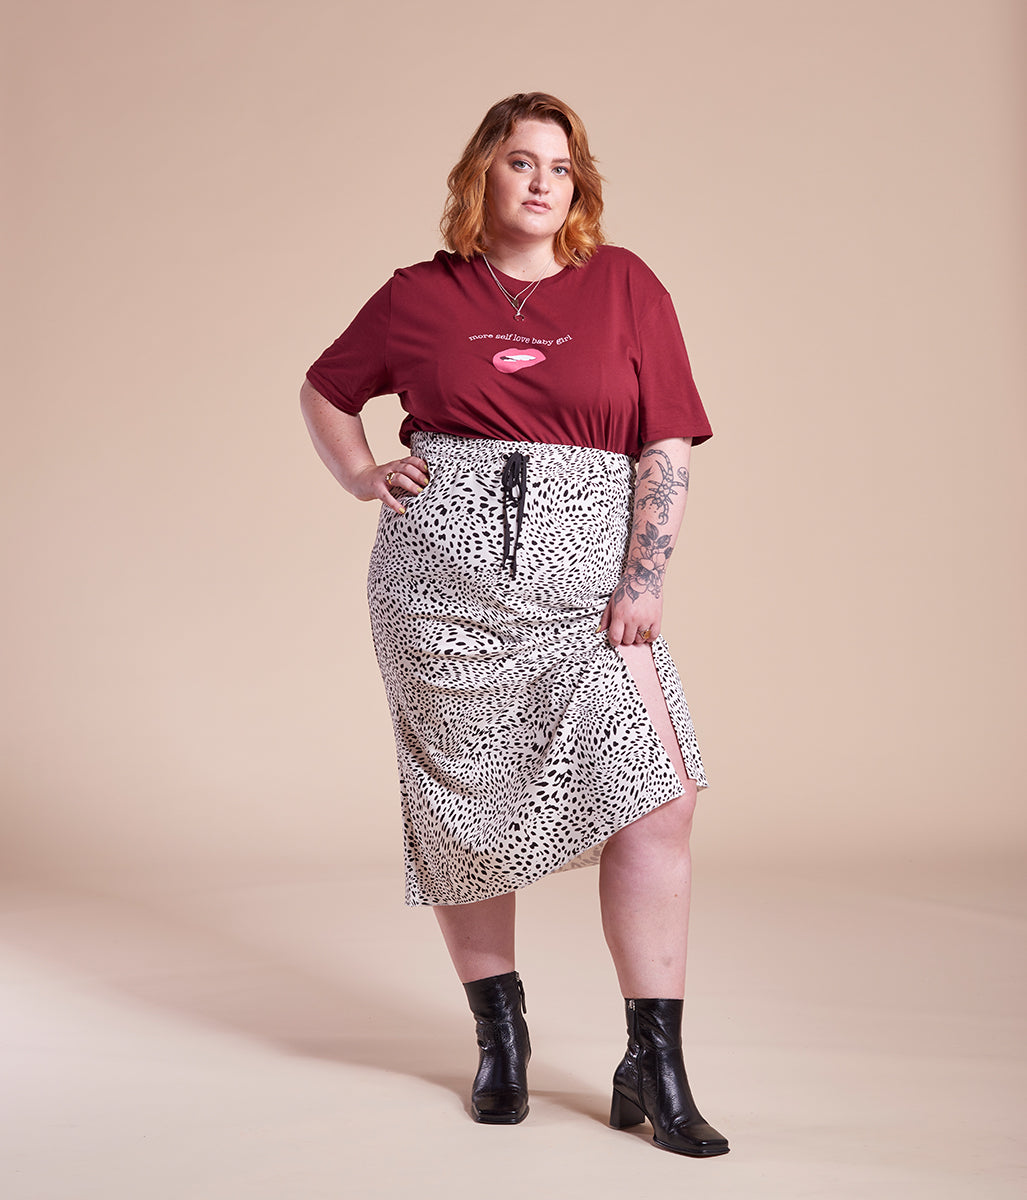 Laden Sie das Bild in den Galerie-Viewer, Favie Curvy Fashion nachhaltiges T-Shirt Statement More Self Love Baby Girl rot Plus Size Vorderansicht